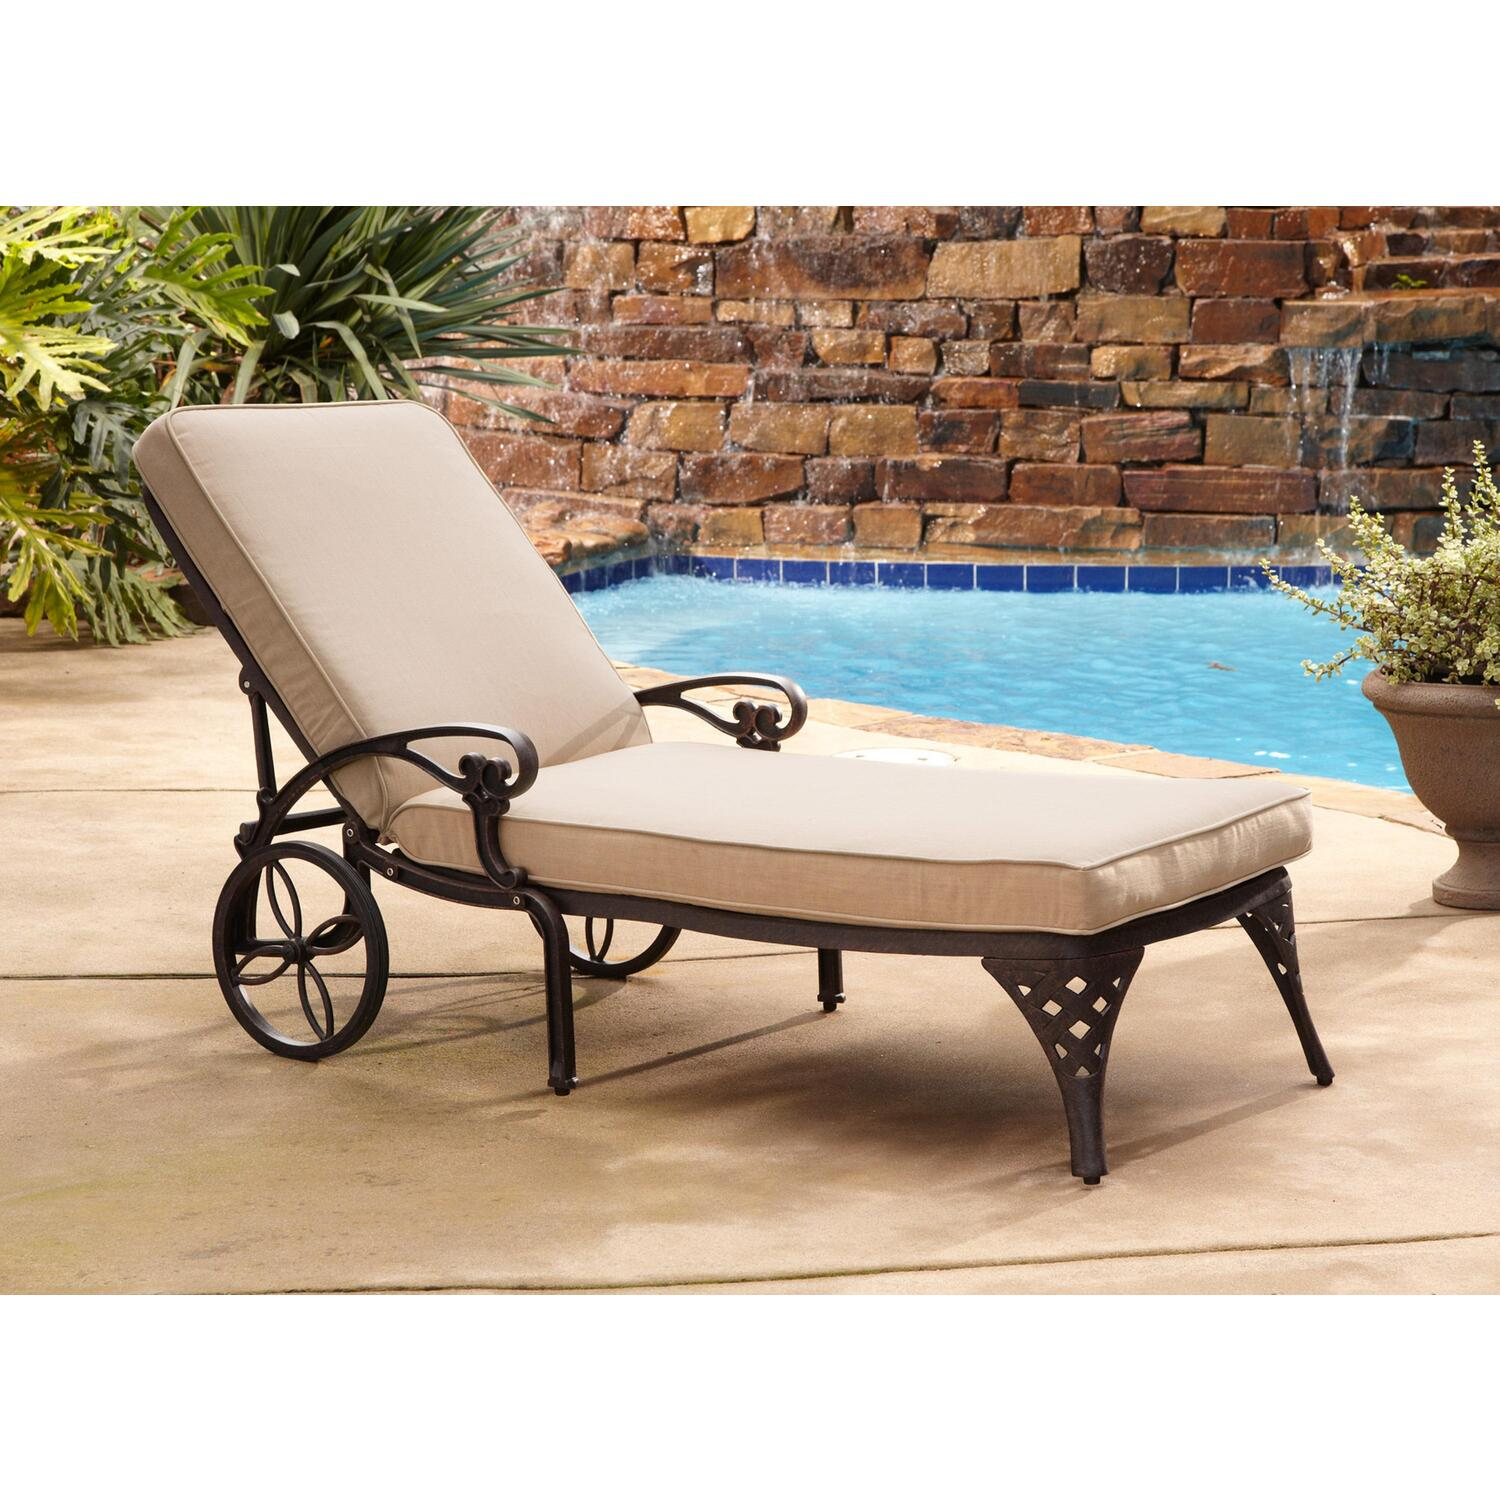 Home styles biscayne chaise lounge chair taupe cushion by for Chaise lounge bench